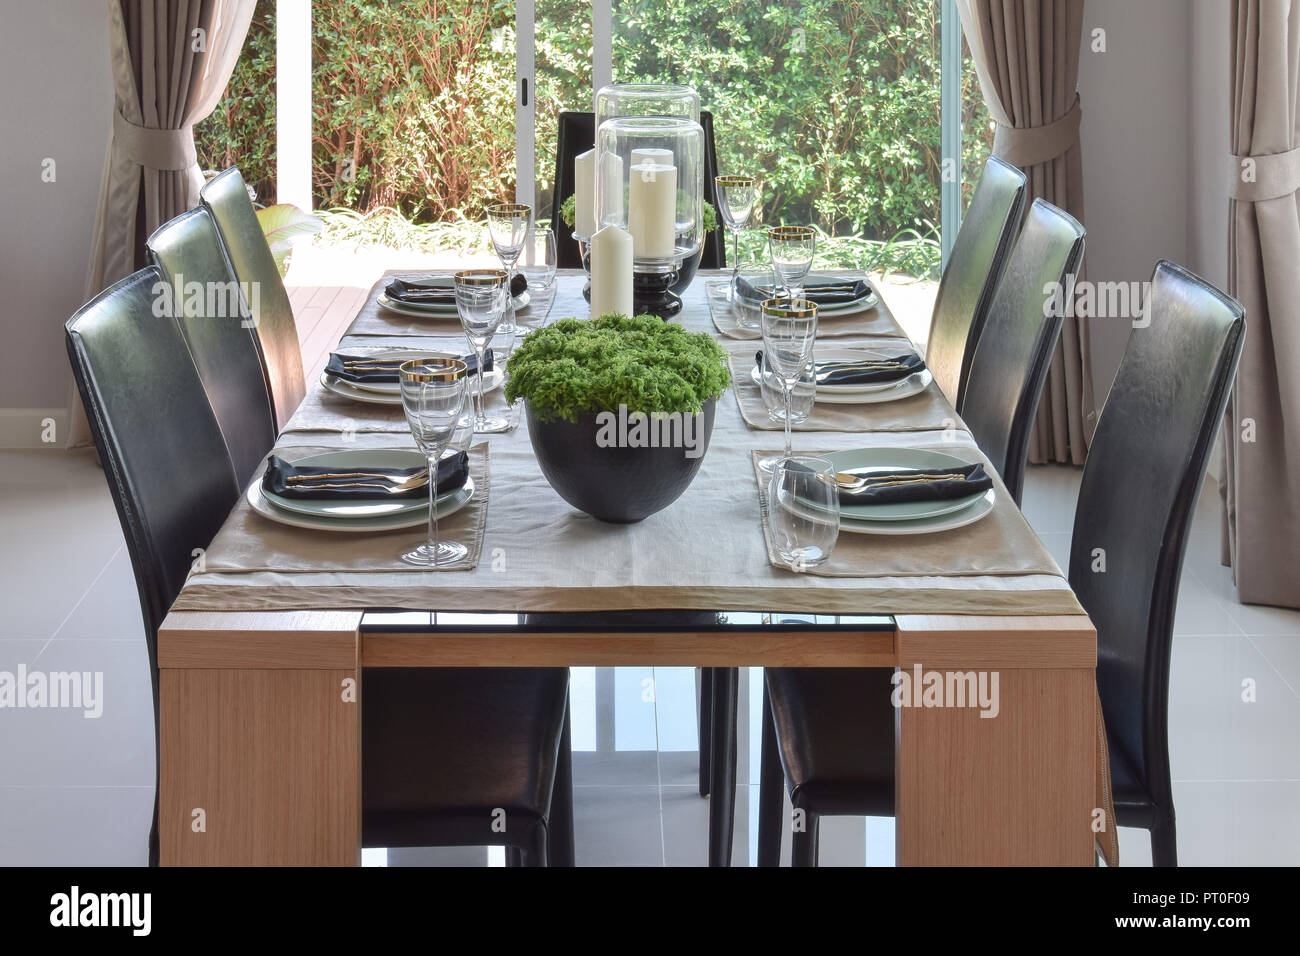 Dining Wooden Table And Comfortable Chairs In Modern Home With Elegant Table Setting Stock Photo Alamy